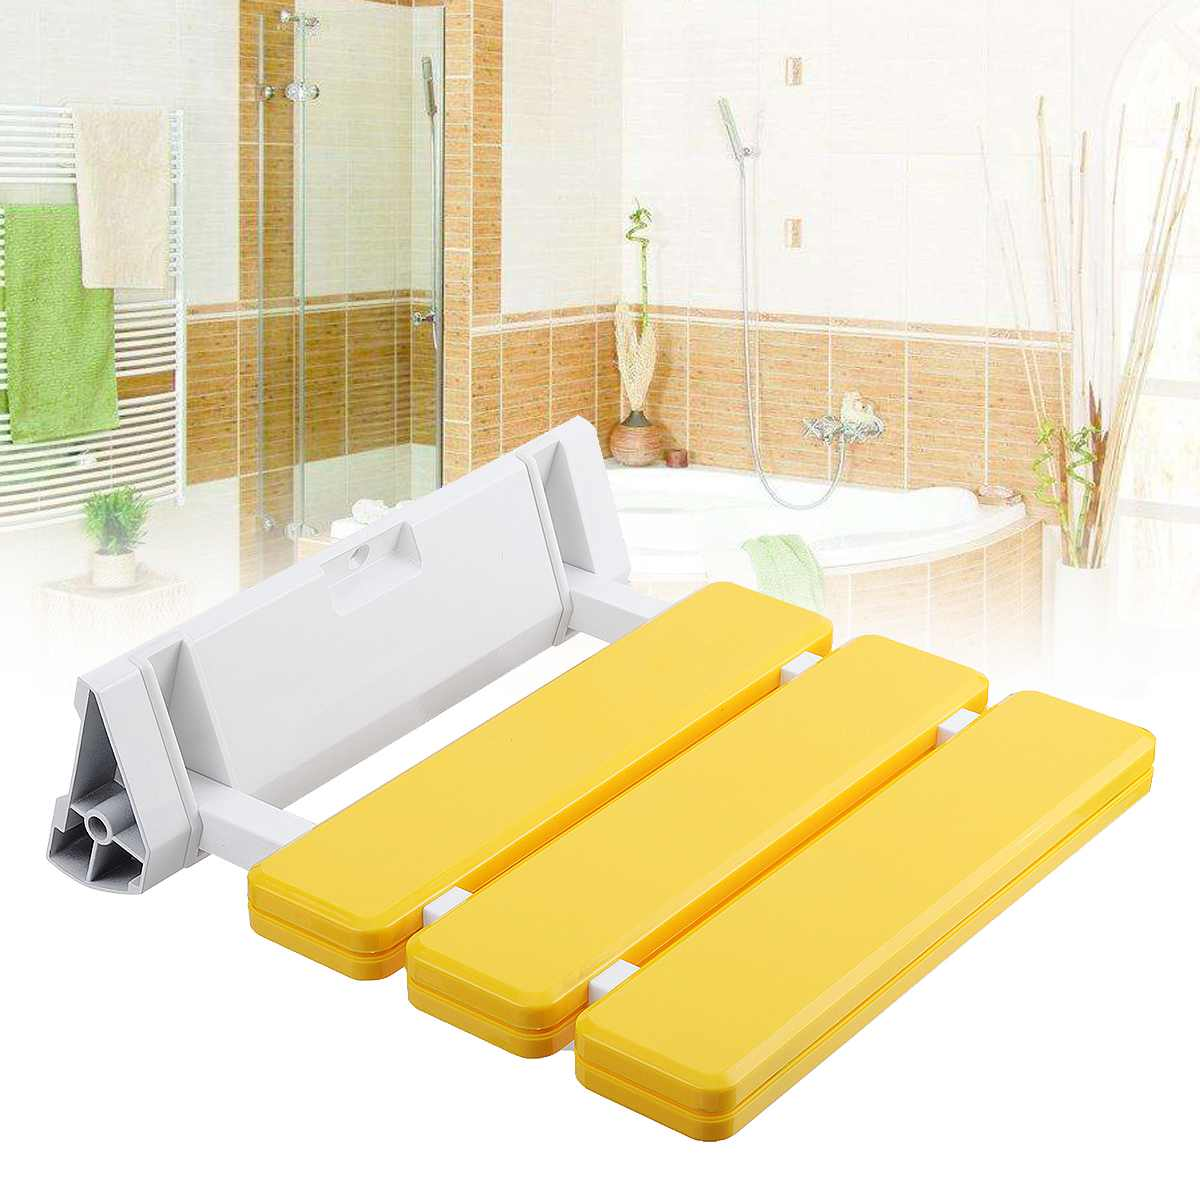 Durable Wall Mounted Shower Seats Plastic Folding Chair Bathroom Stool Taburete Relax Chair Toilet Bench For Shower